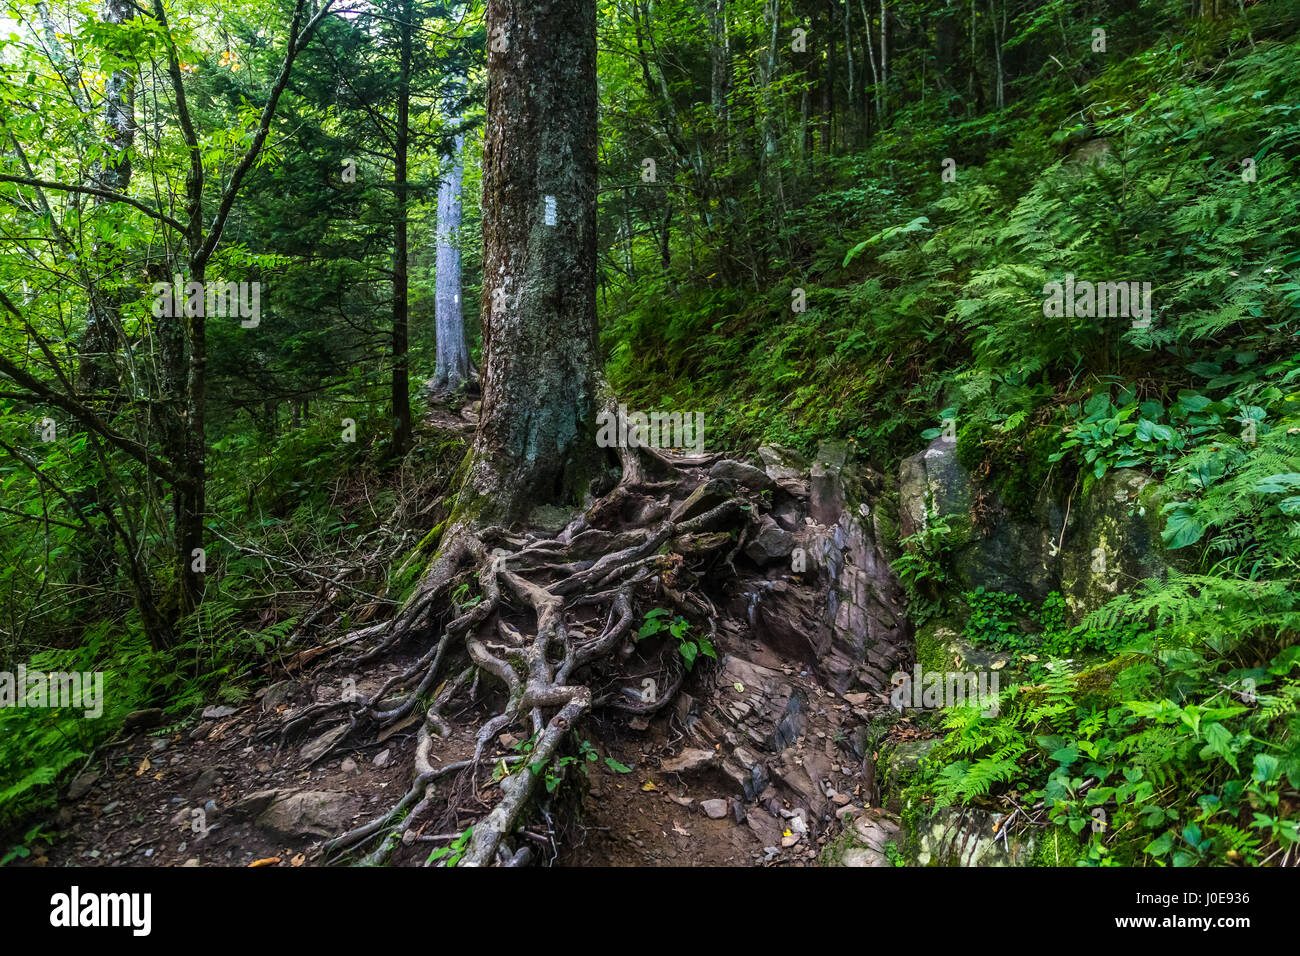 The Appalachian Trail as it crosses the Smoky Mountains in North Carolina and Tennessee. - Stock Image